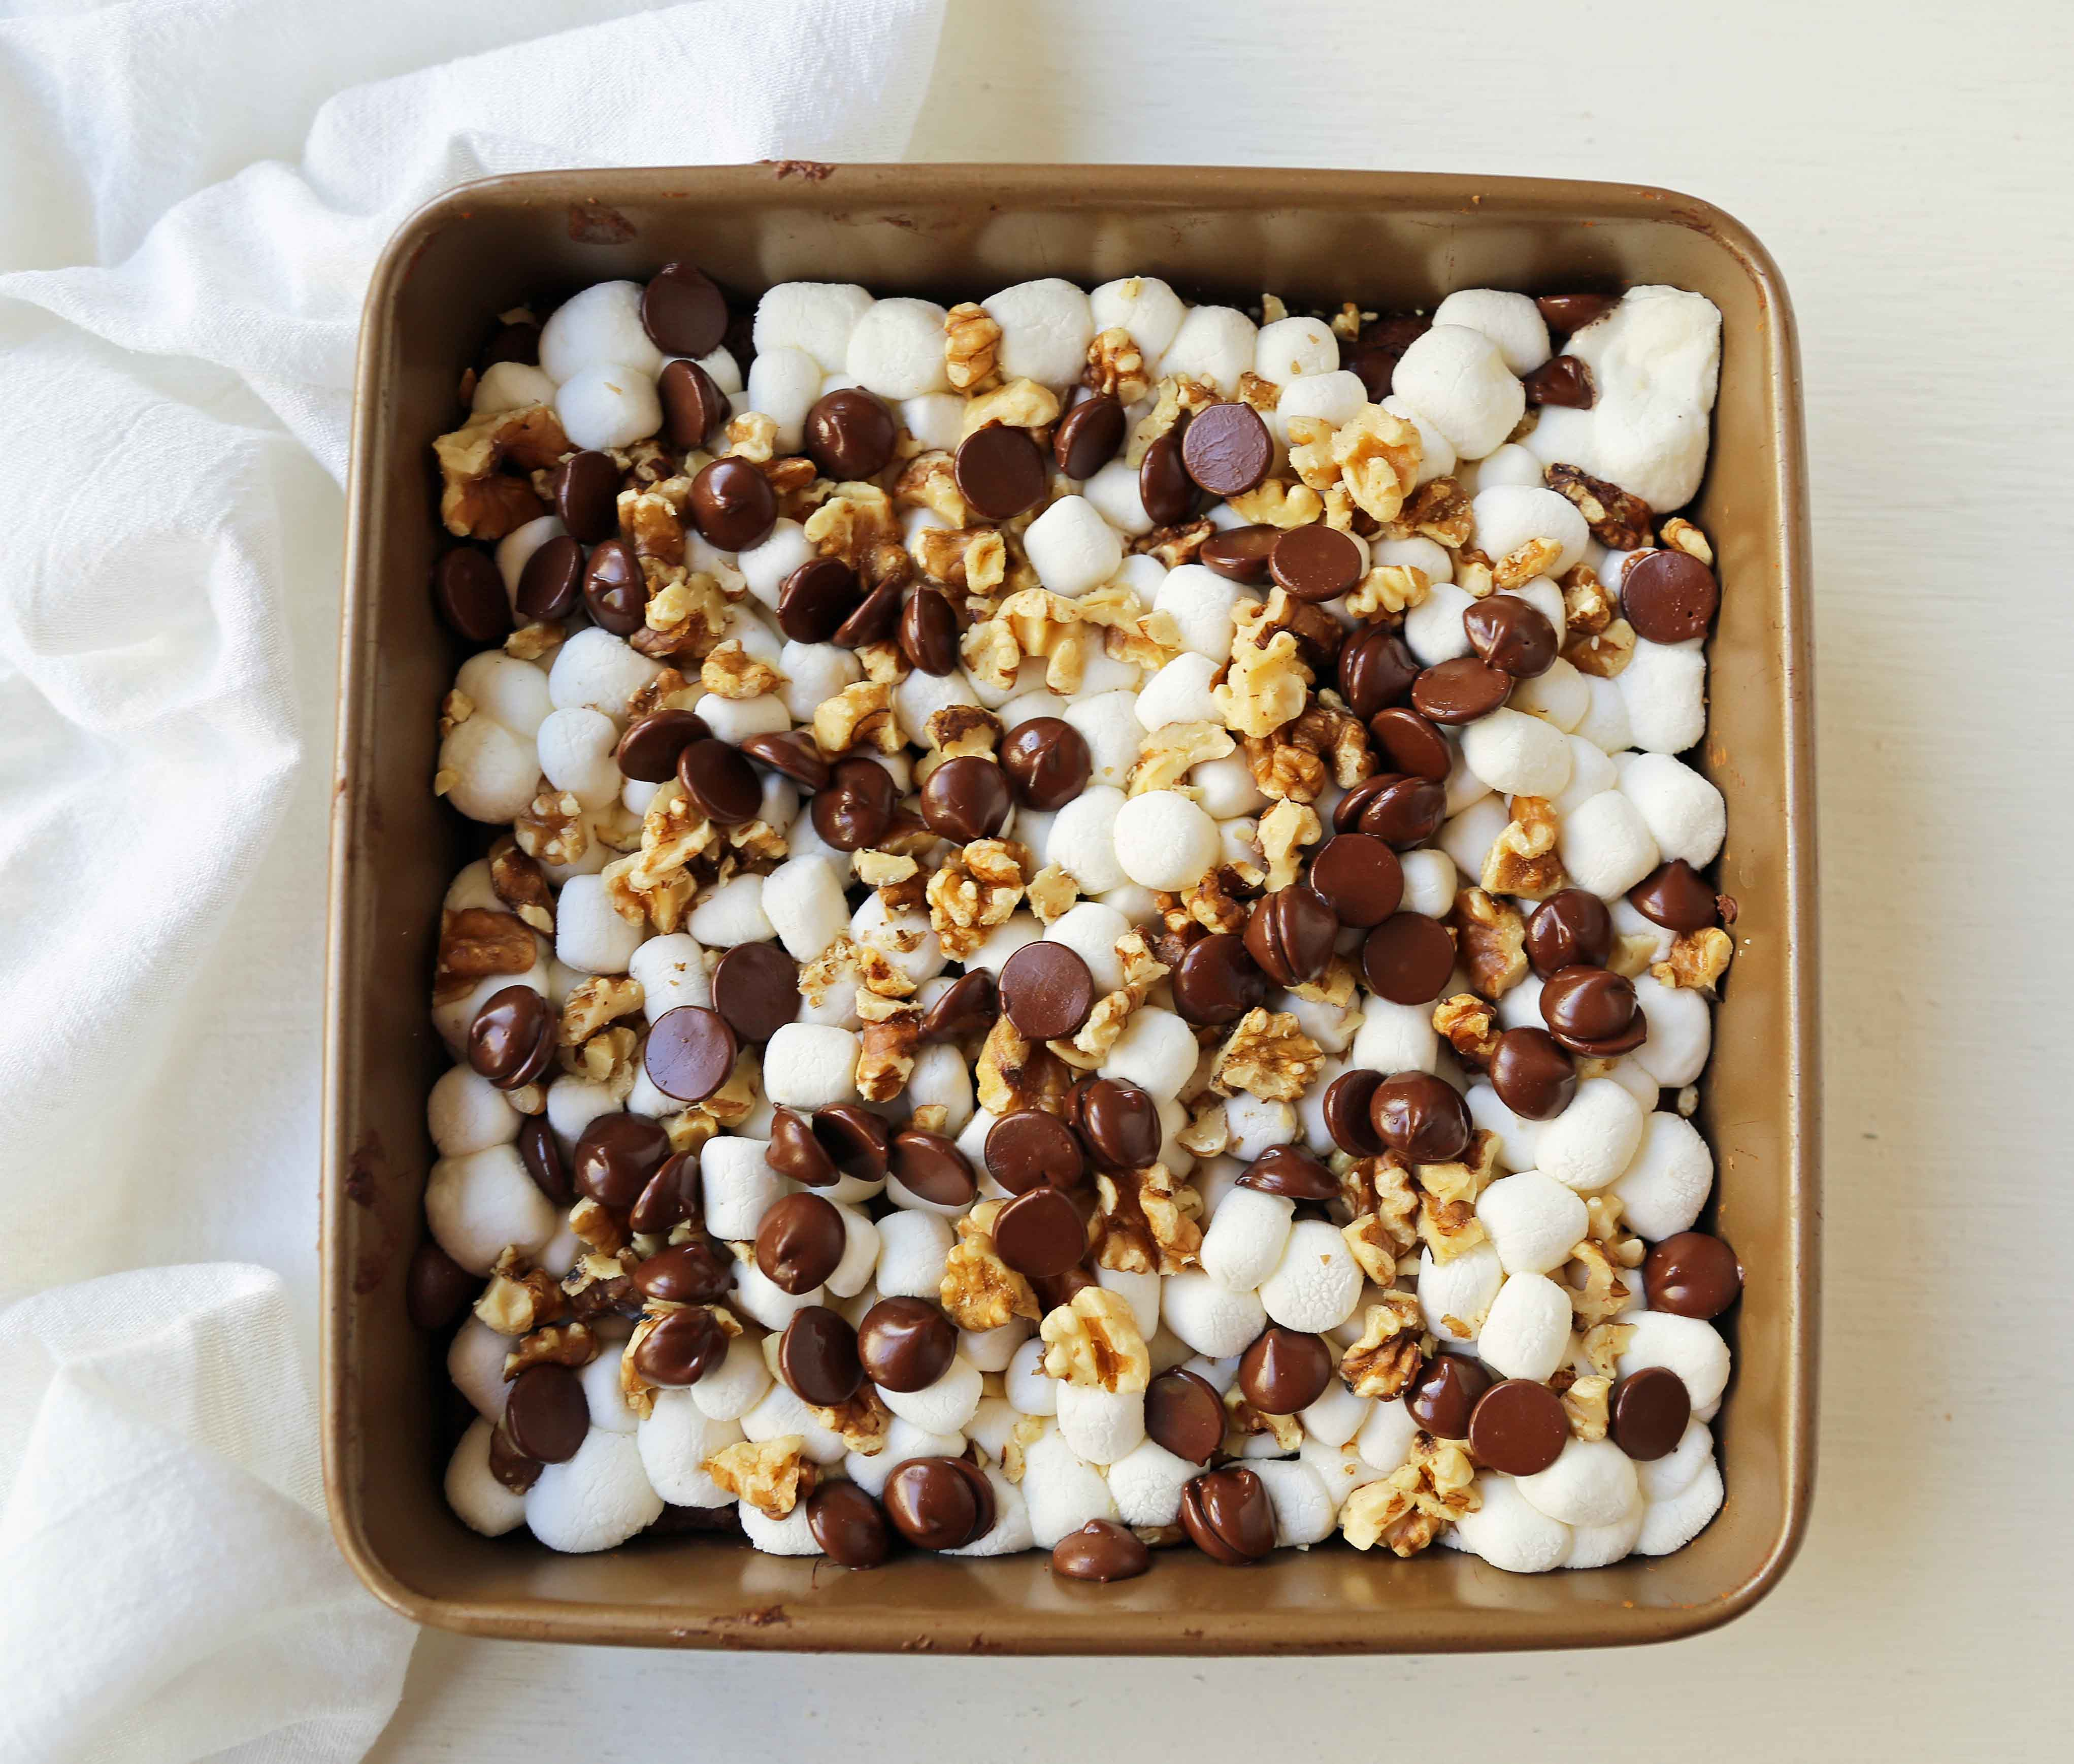 Rocky Road Brownies. Homemade decadent chocolate brownies topped with melted marshmallows, chocolate chips, and walnuts. A classic brownie! www.modernhoney.com #rockyroad #rockyroadbrownies #gourmetbrownies